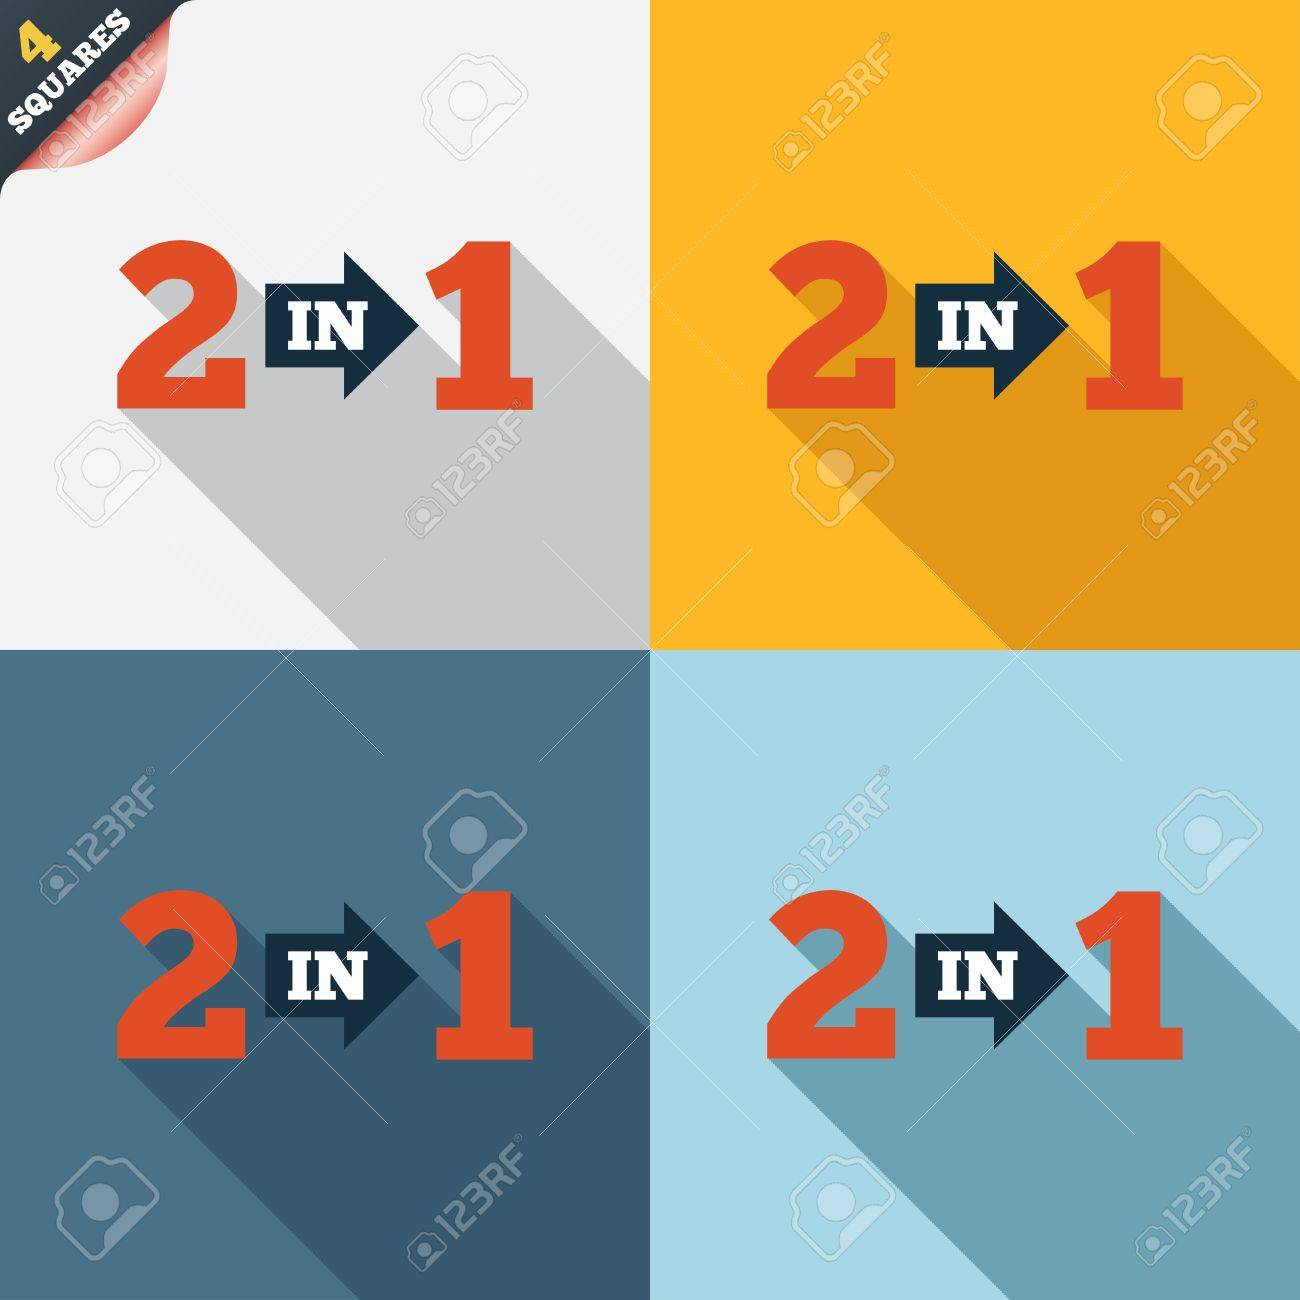 Two in one suite sign icon 2 in 1 symbol with arrow four squares two in one suite sign icon 2 in 1 symbol with arrow four squares buycottarizona